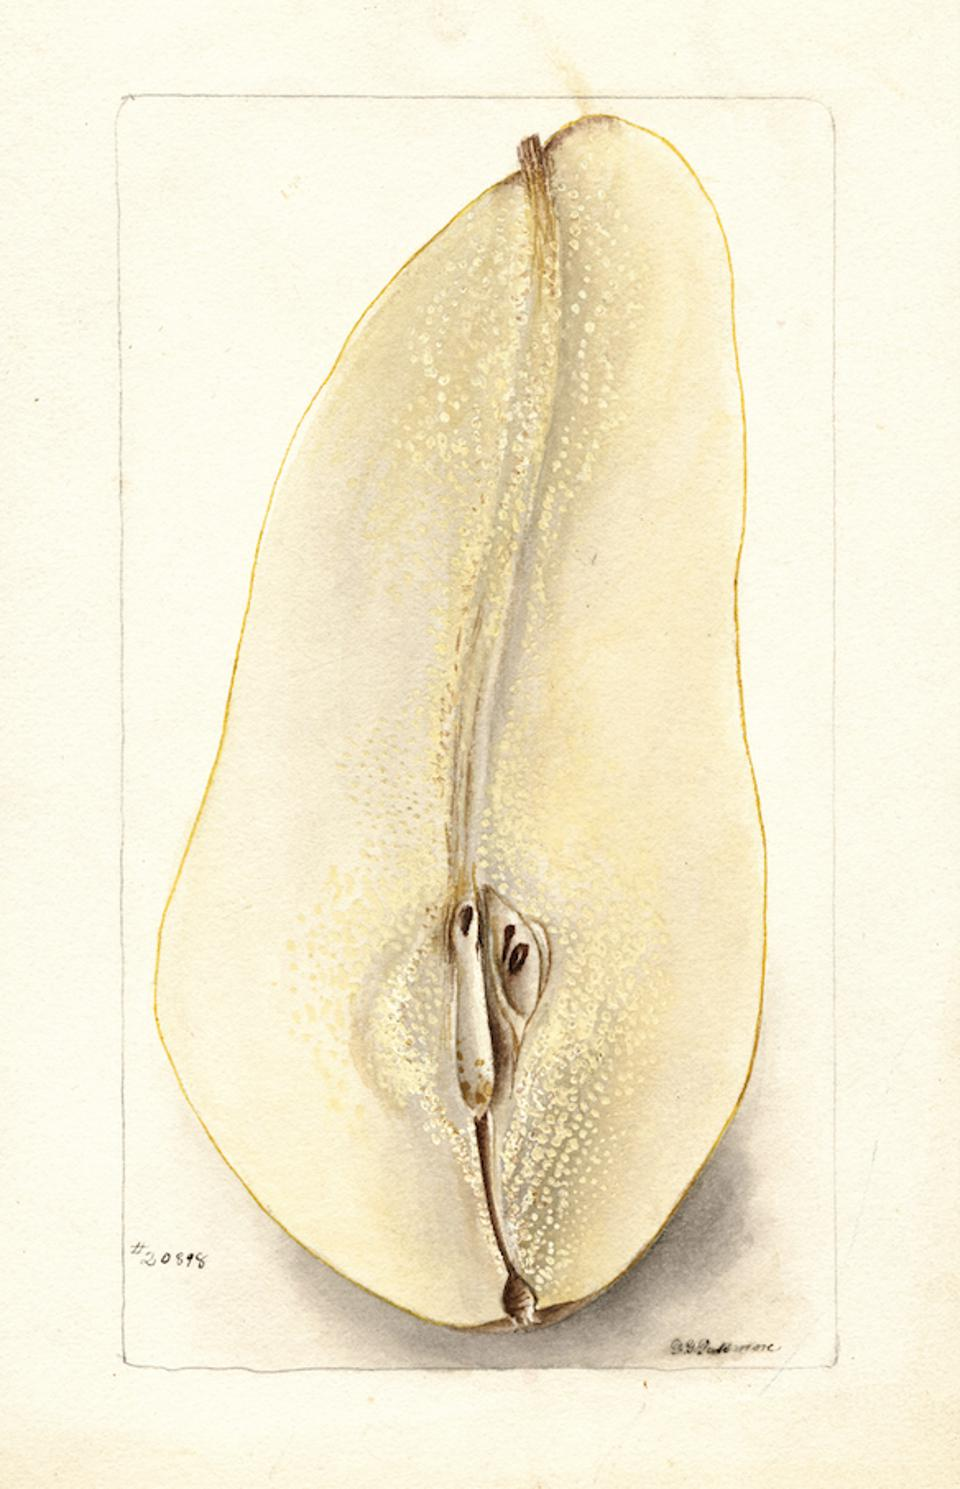 Pear, Belle Angevine. By D. G. Passmore, 1900. Image from An Illustrated Catalog of American Fruits & Nuts, published by Atelier Editions. USDA Pomological Watercolor Collection. Courtesy of Special Collections, USDA National Agricultural Library.